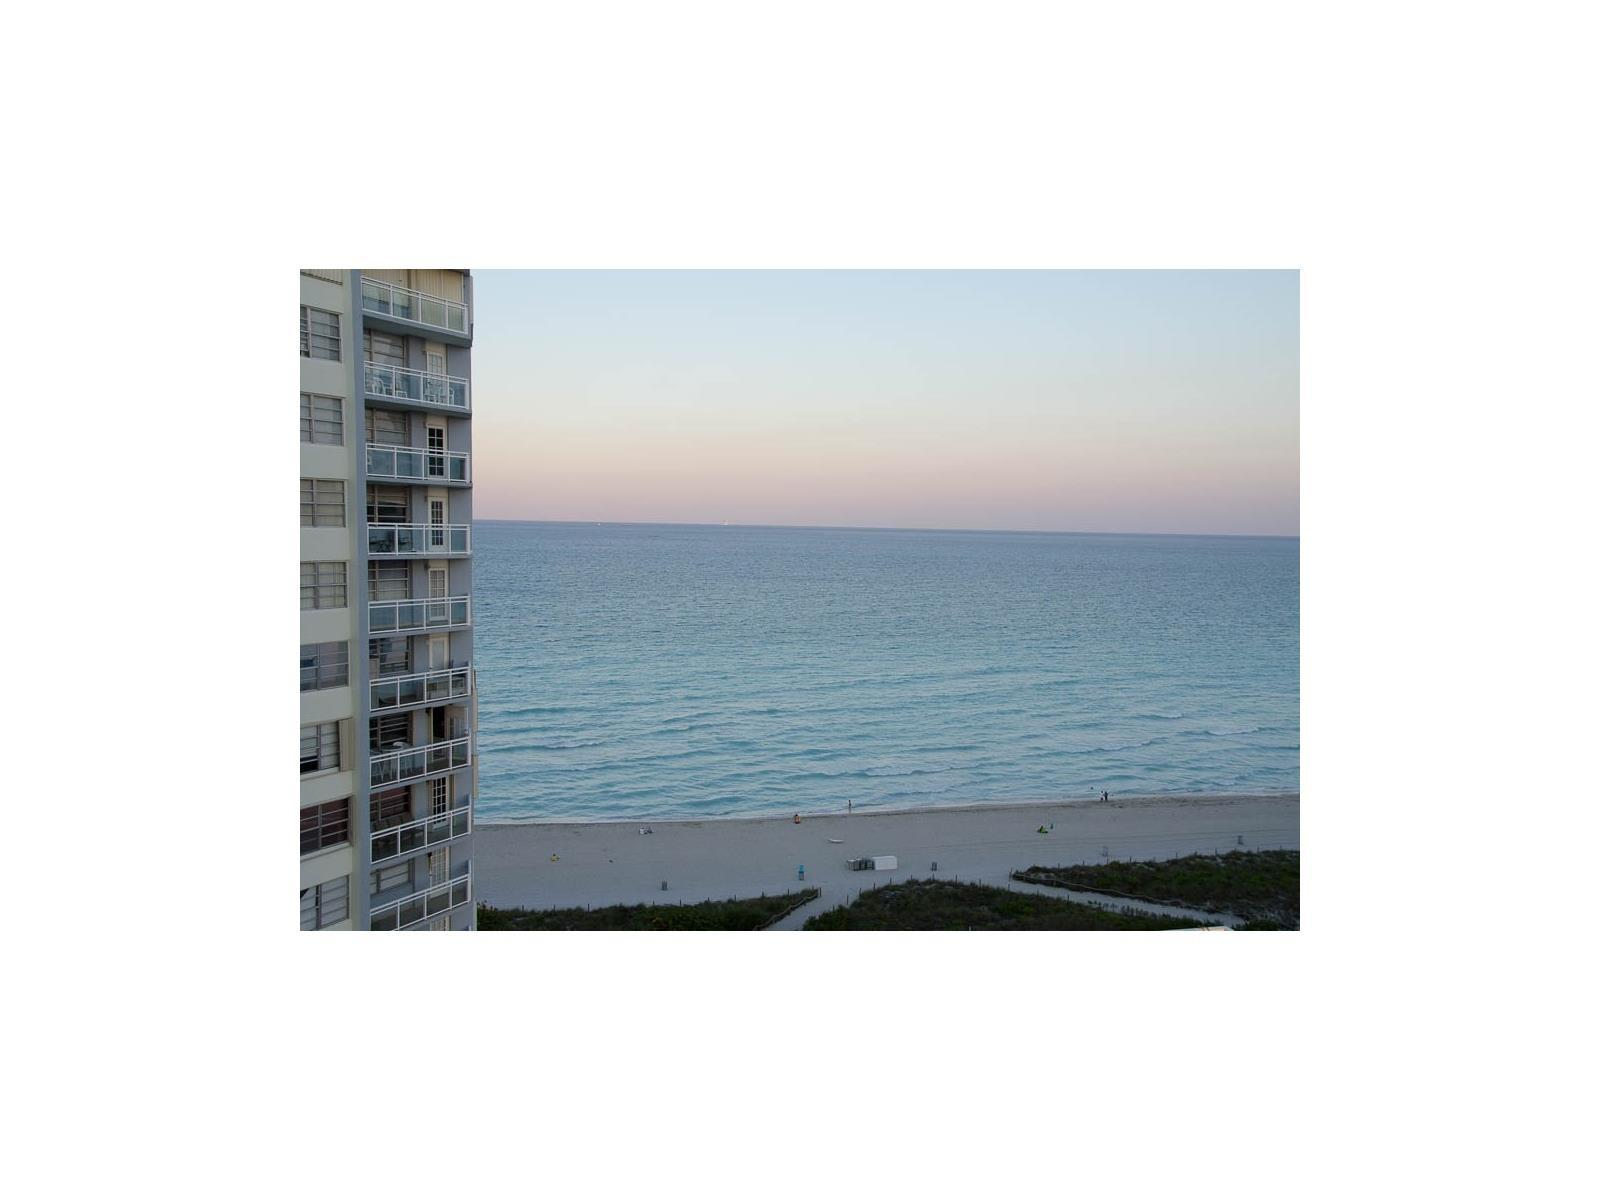 One BR Apartment - ammazing/stunning direct ocean front views from all rooms. photo #1